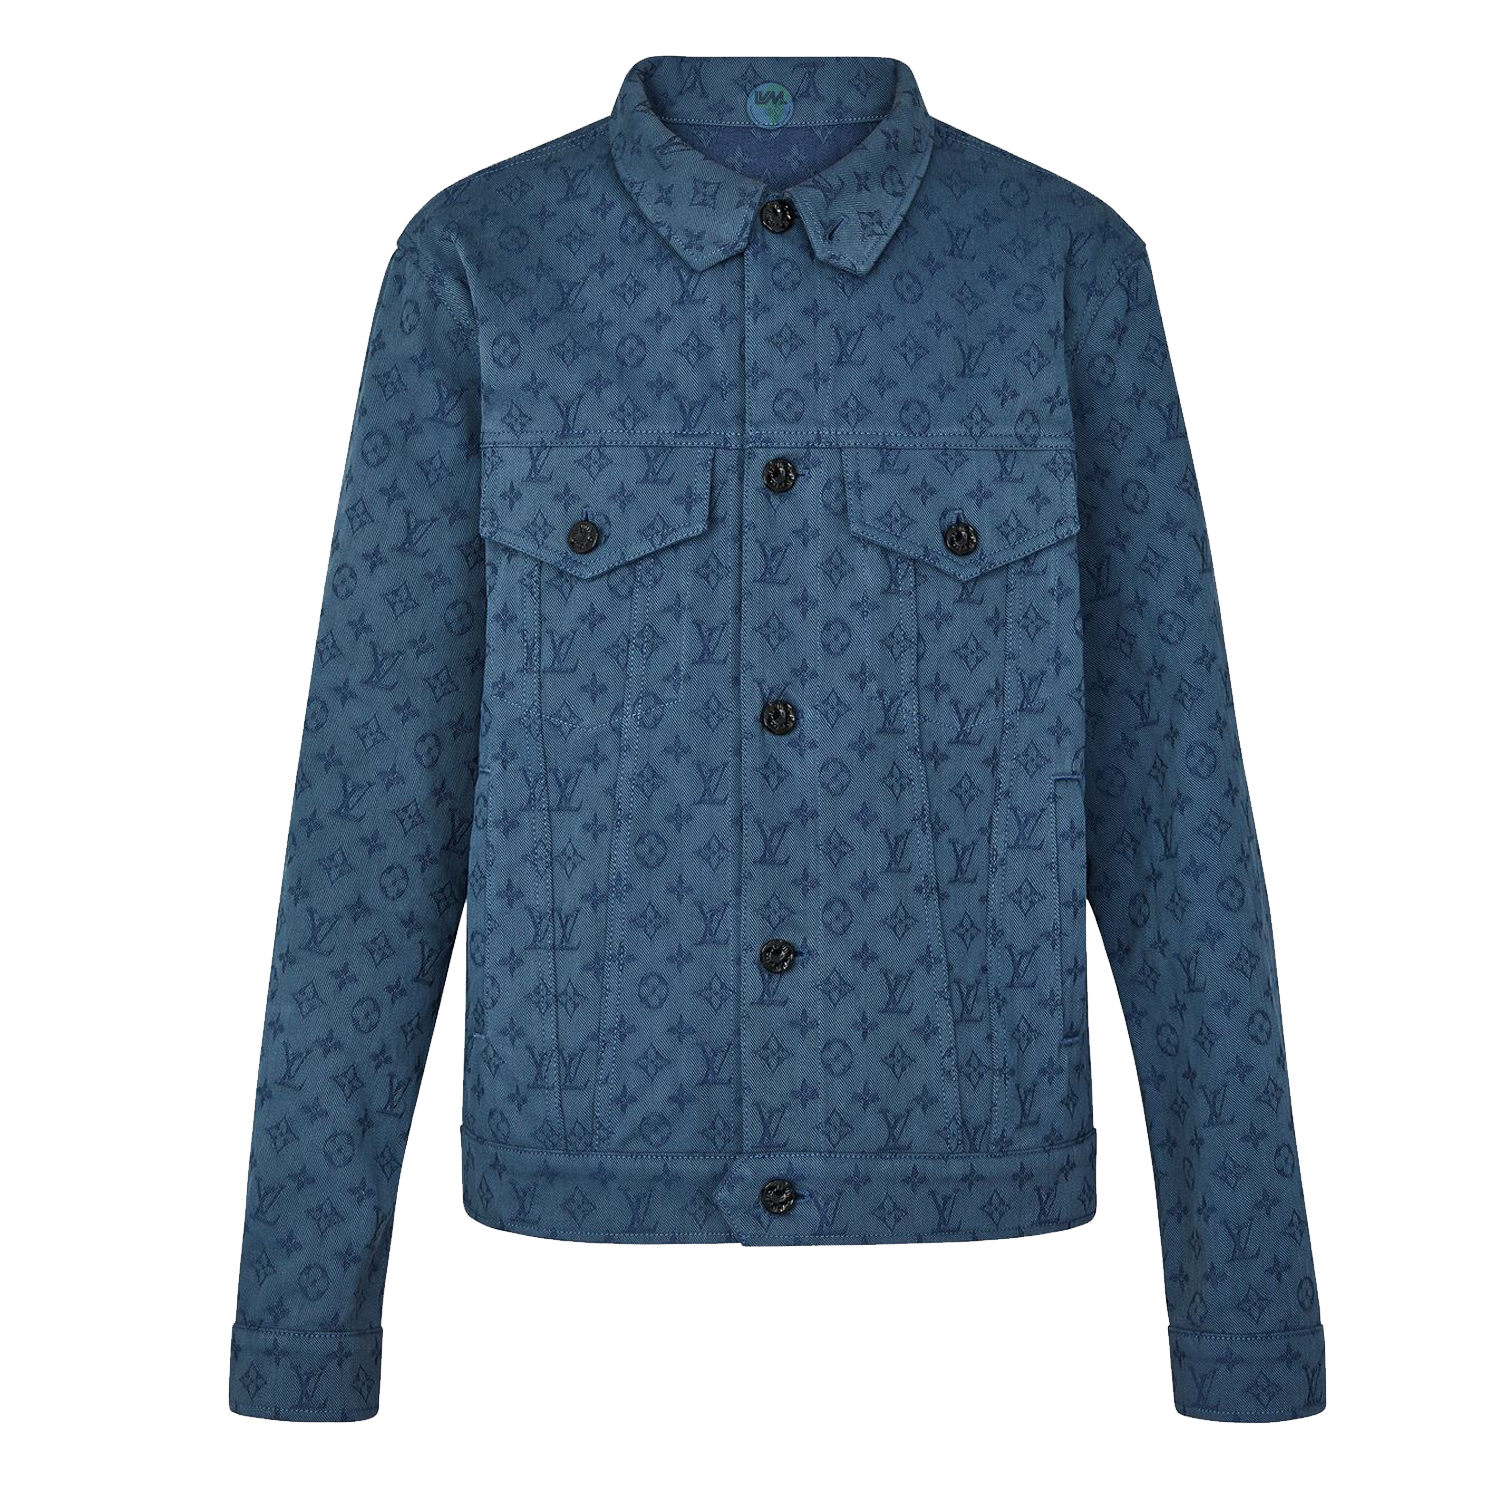 MONOGRAM DENIM JACKET - €1500 $19901A5D89BLEU